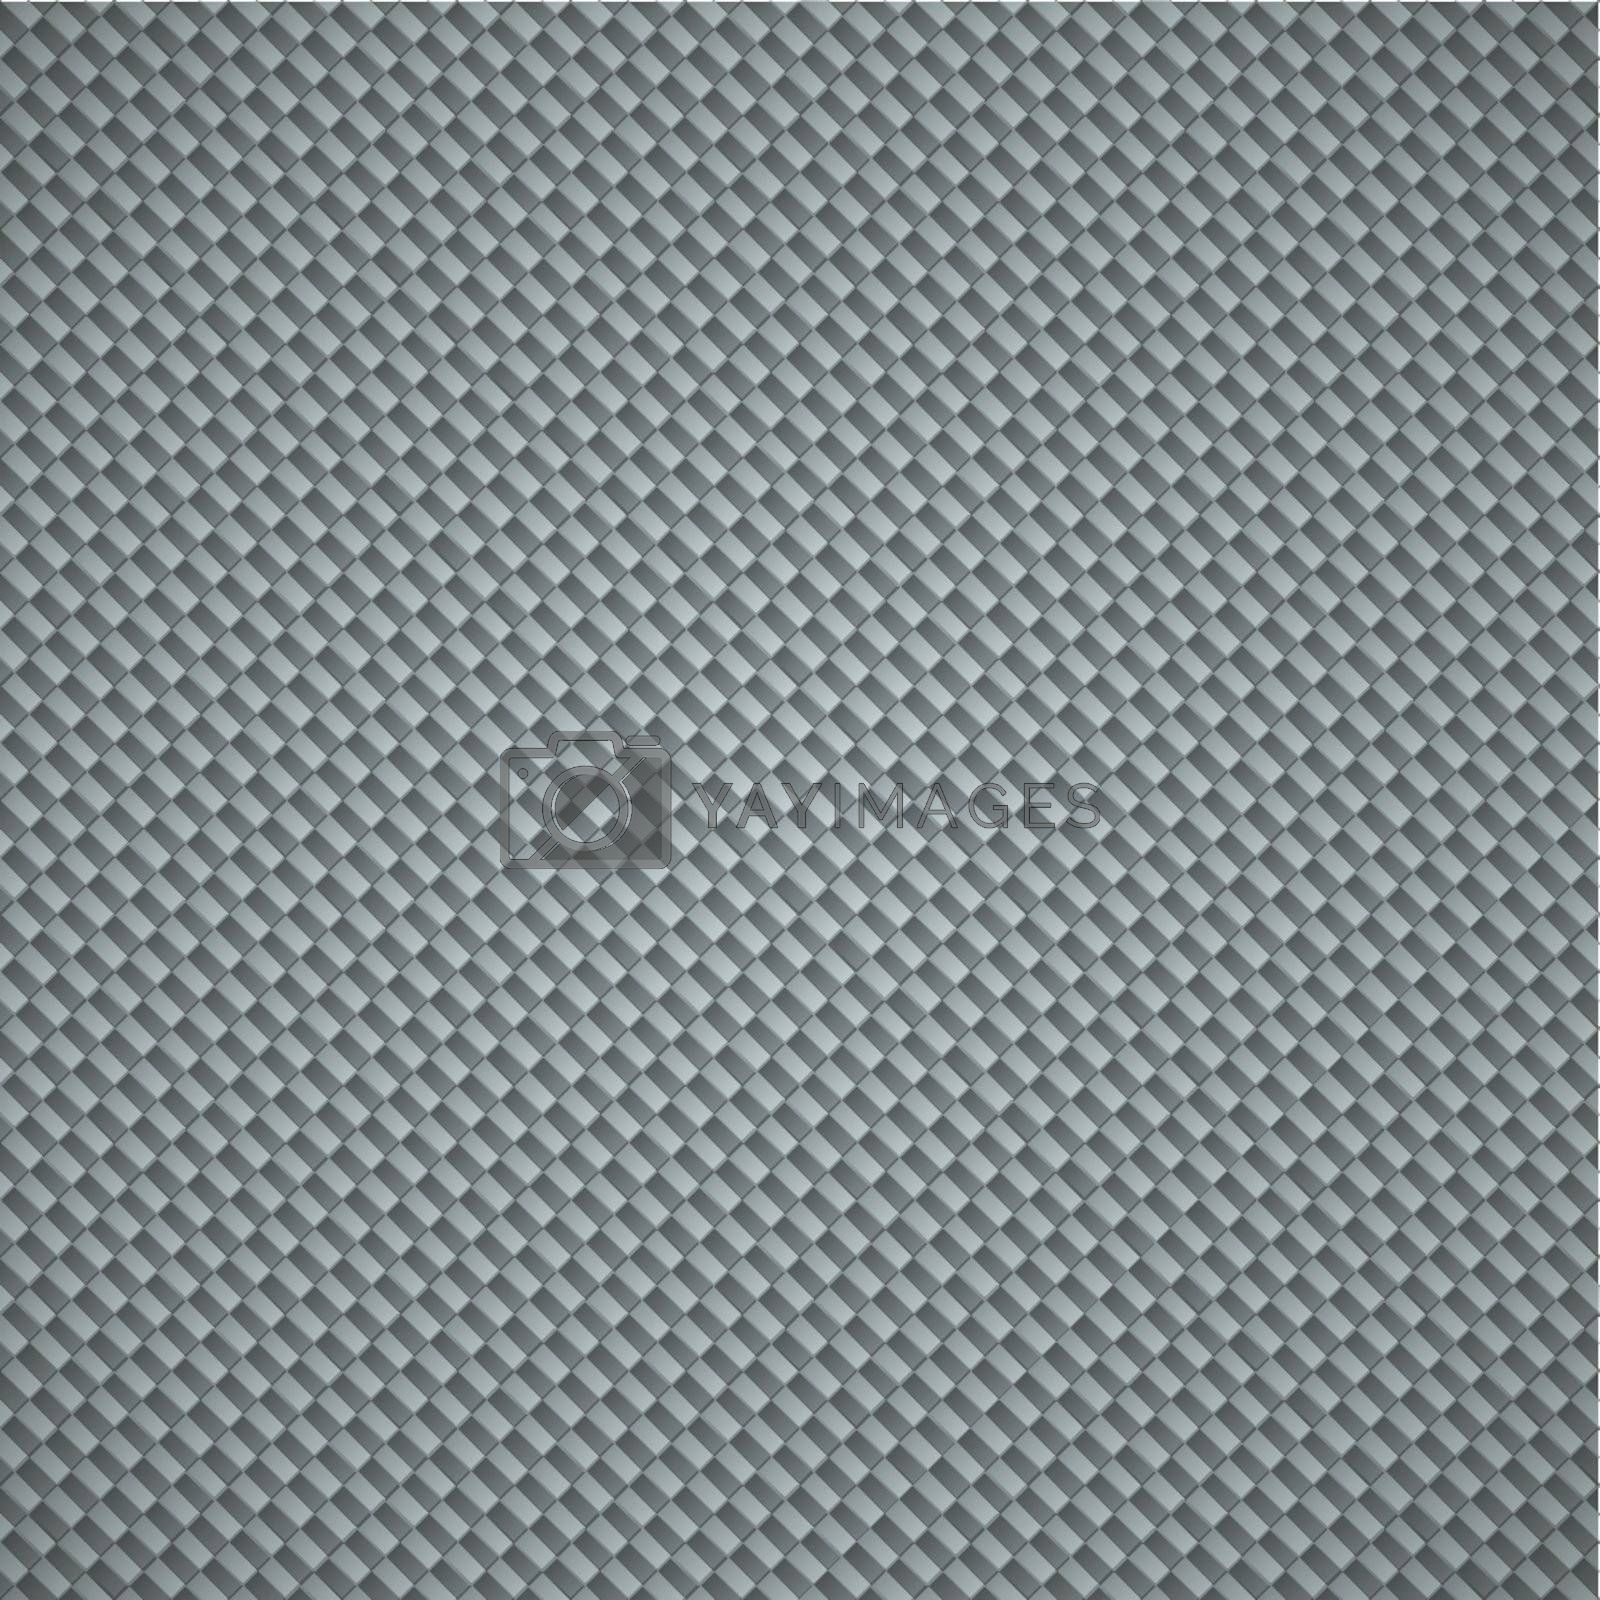 Black carbon background pattern of composite fiber racing material